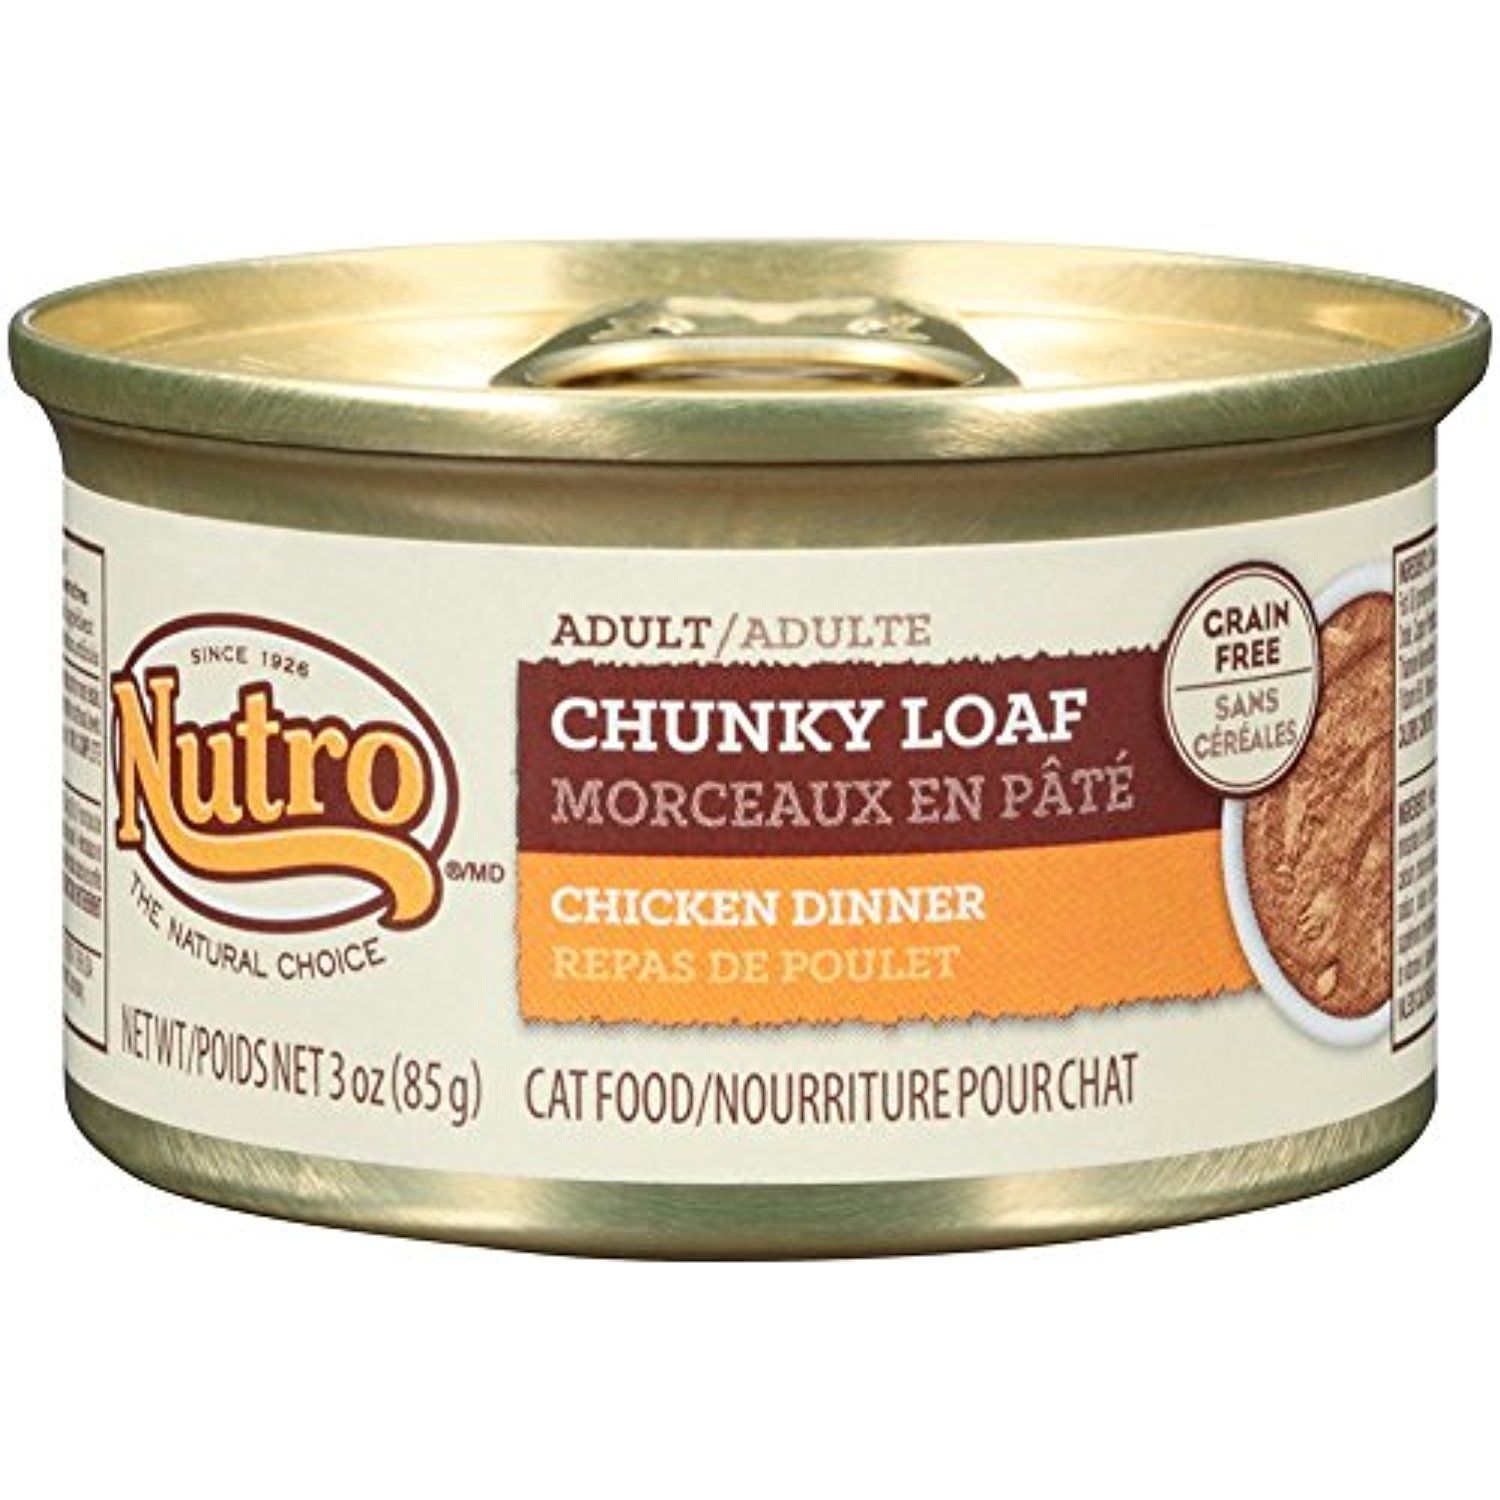 Nutro natural choice adult cat chunky loaf chicken dinner